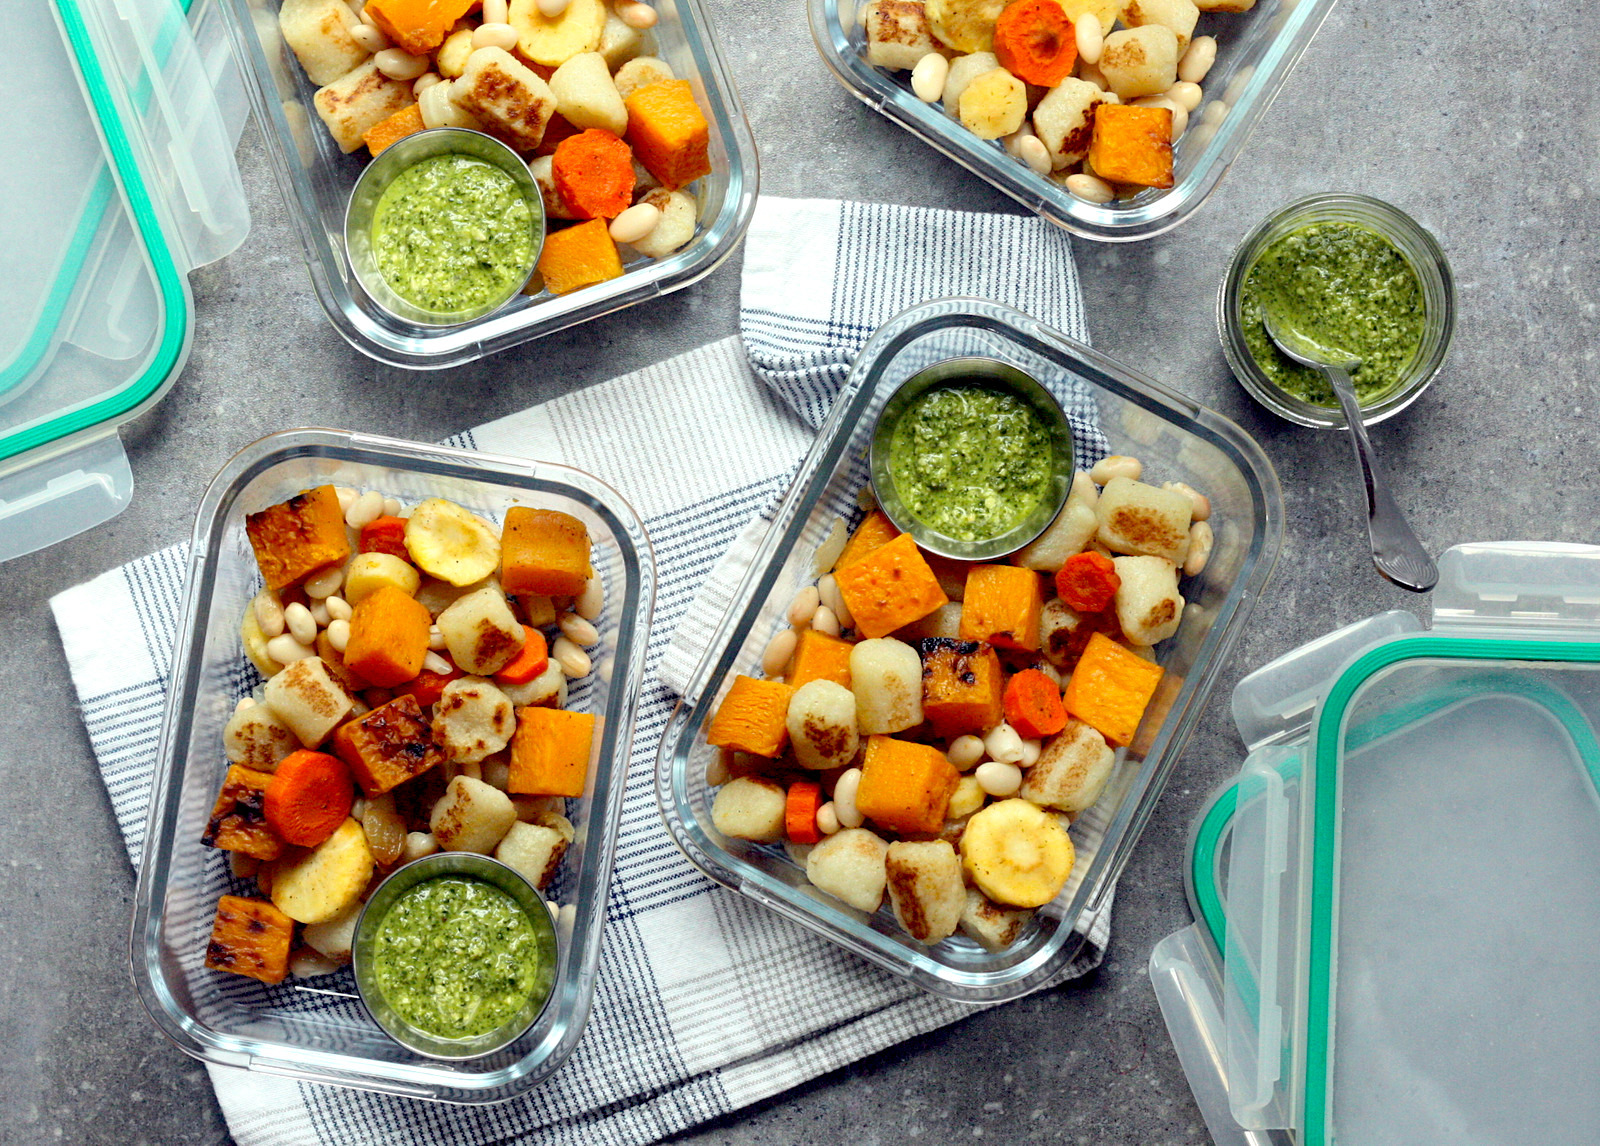 rosted root vegetables with pesto and gnocchi